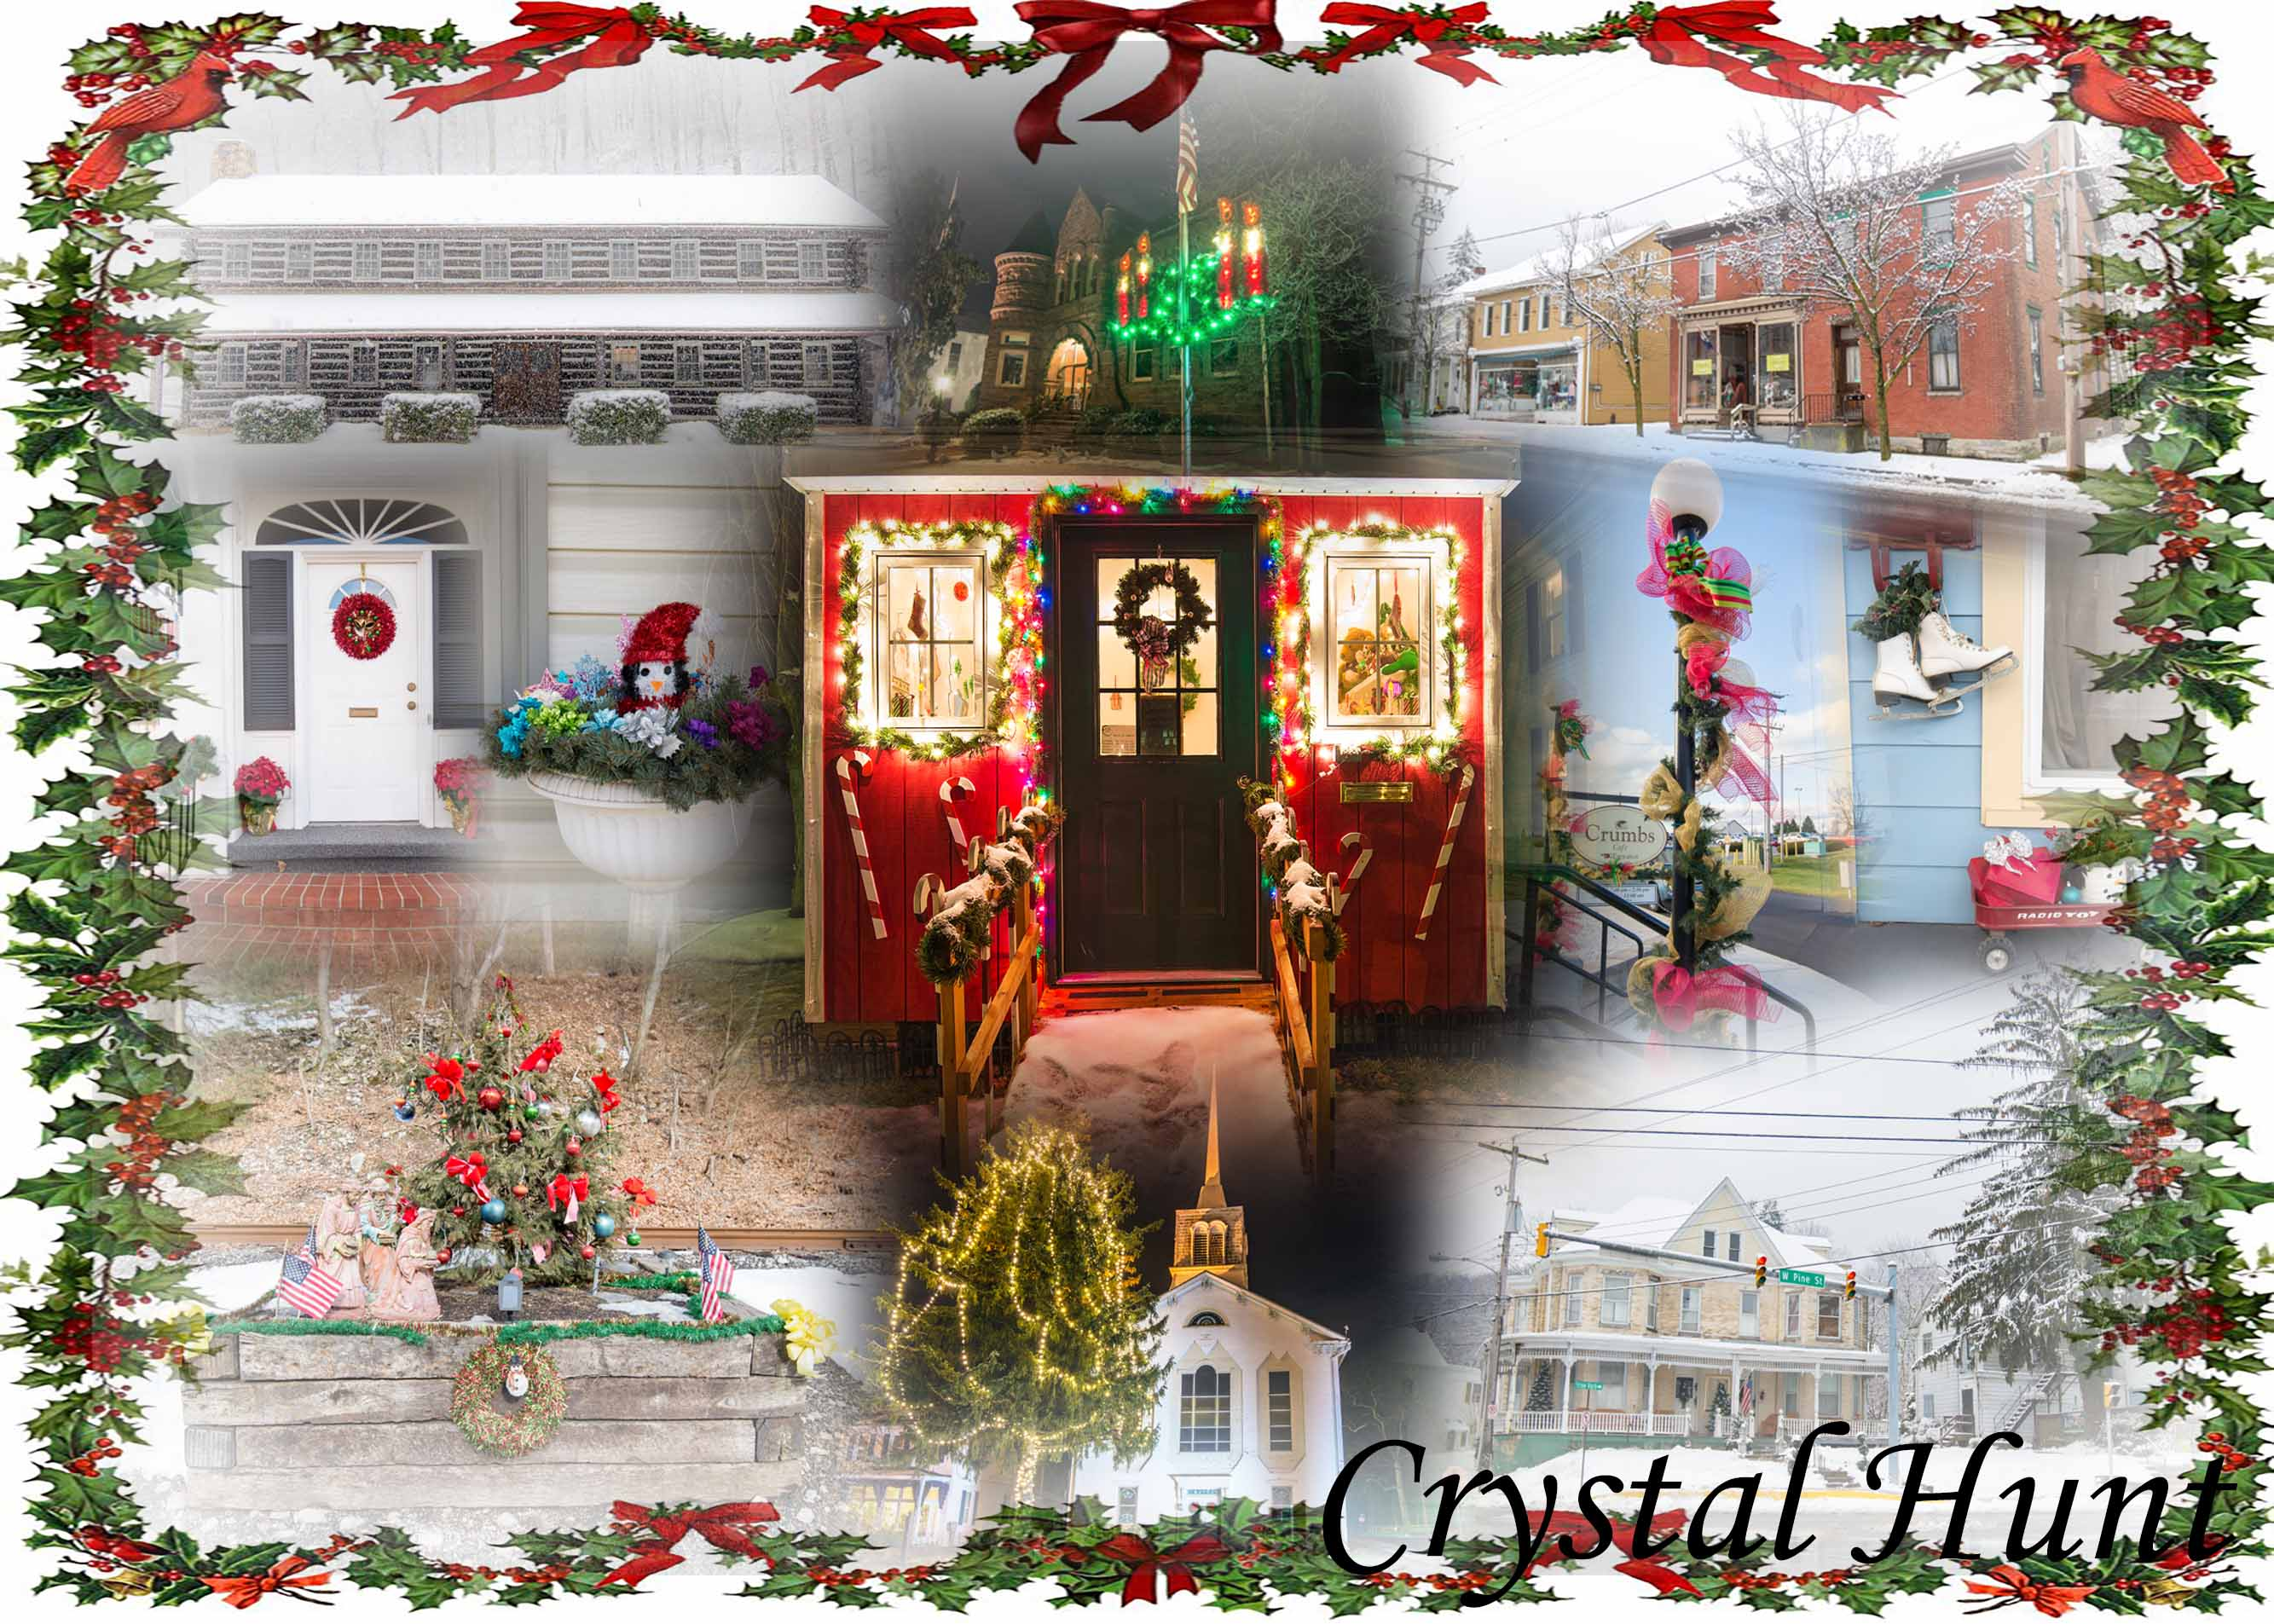 Mt. Holly Christmas Card Collage